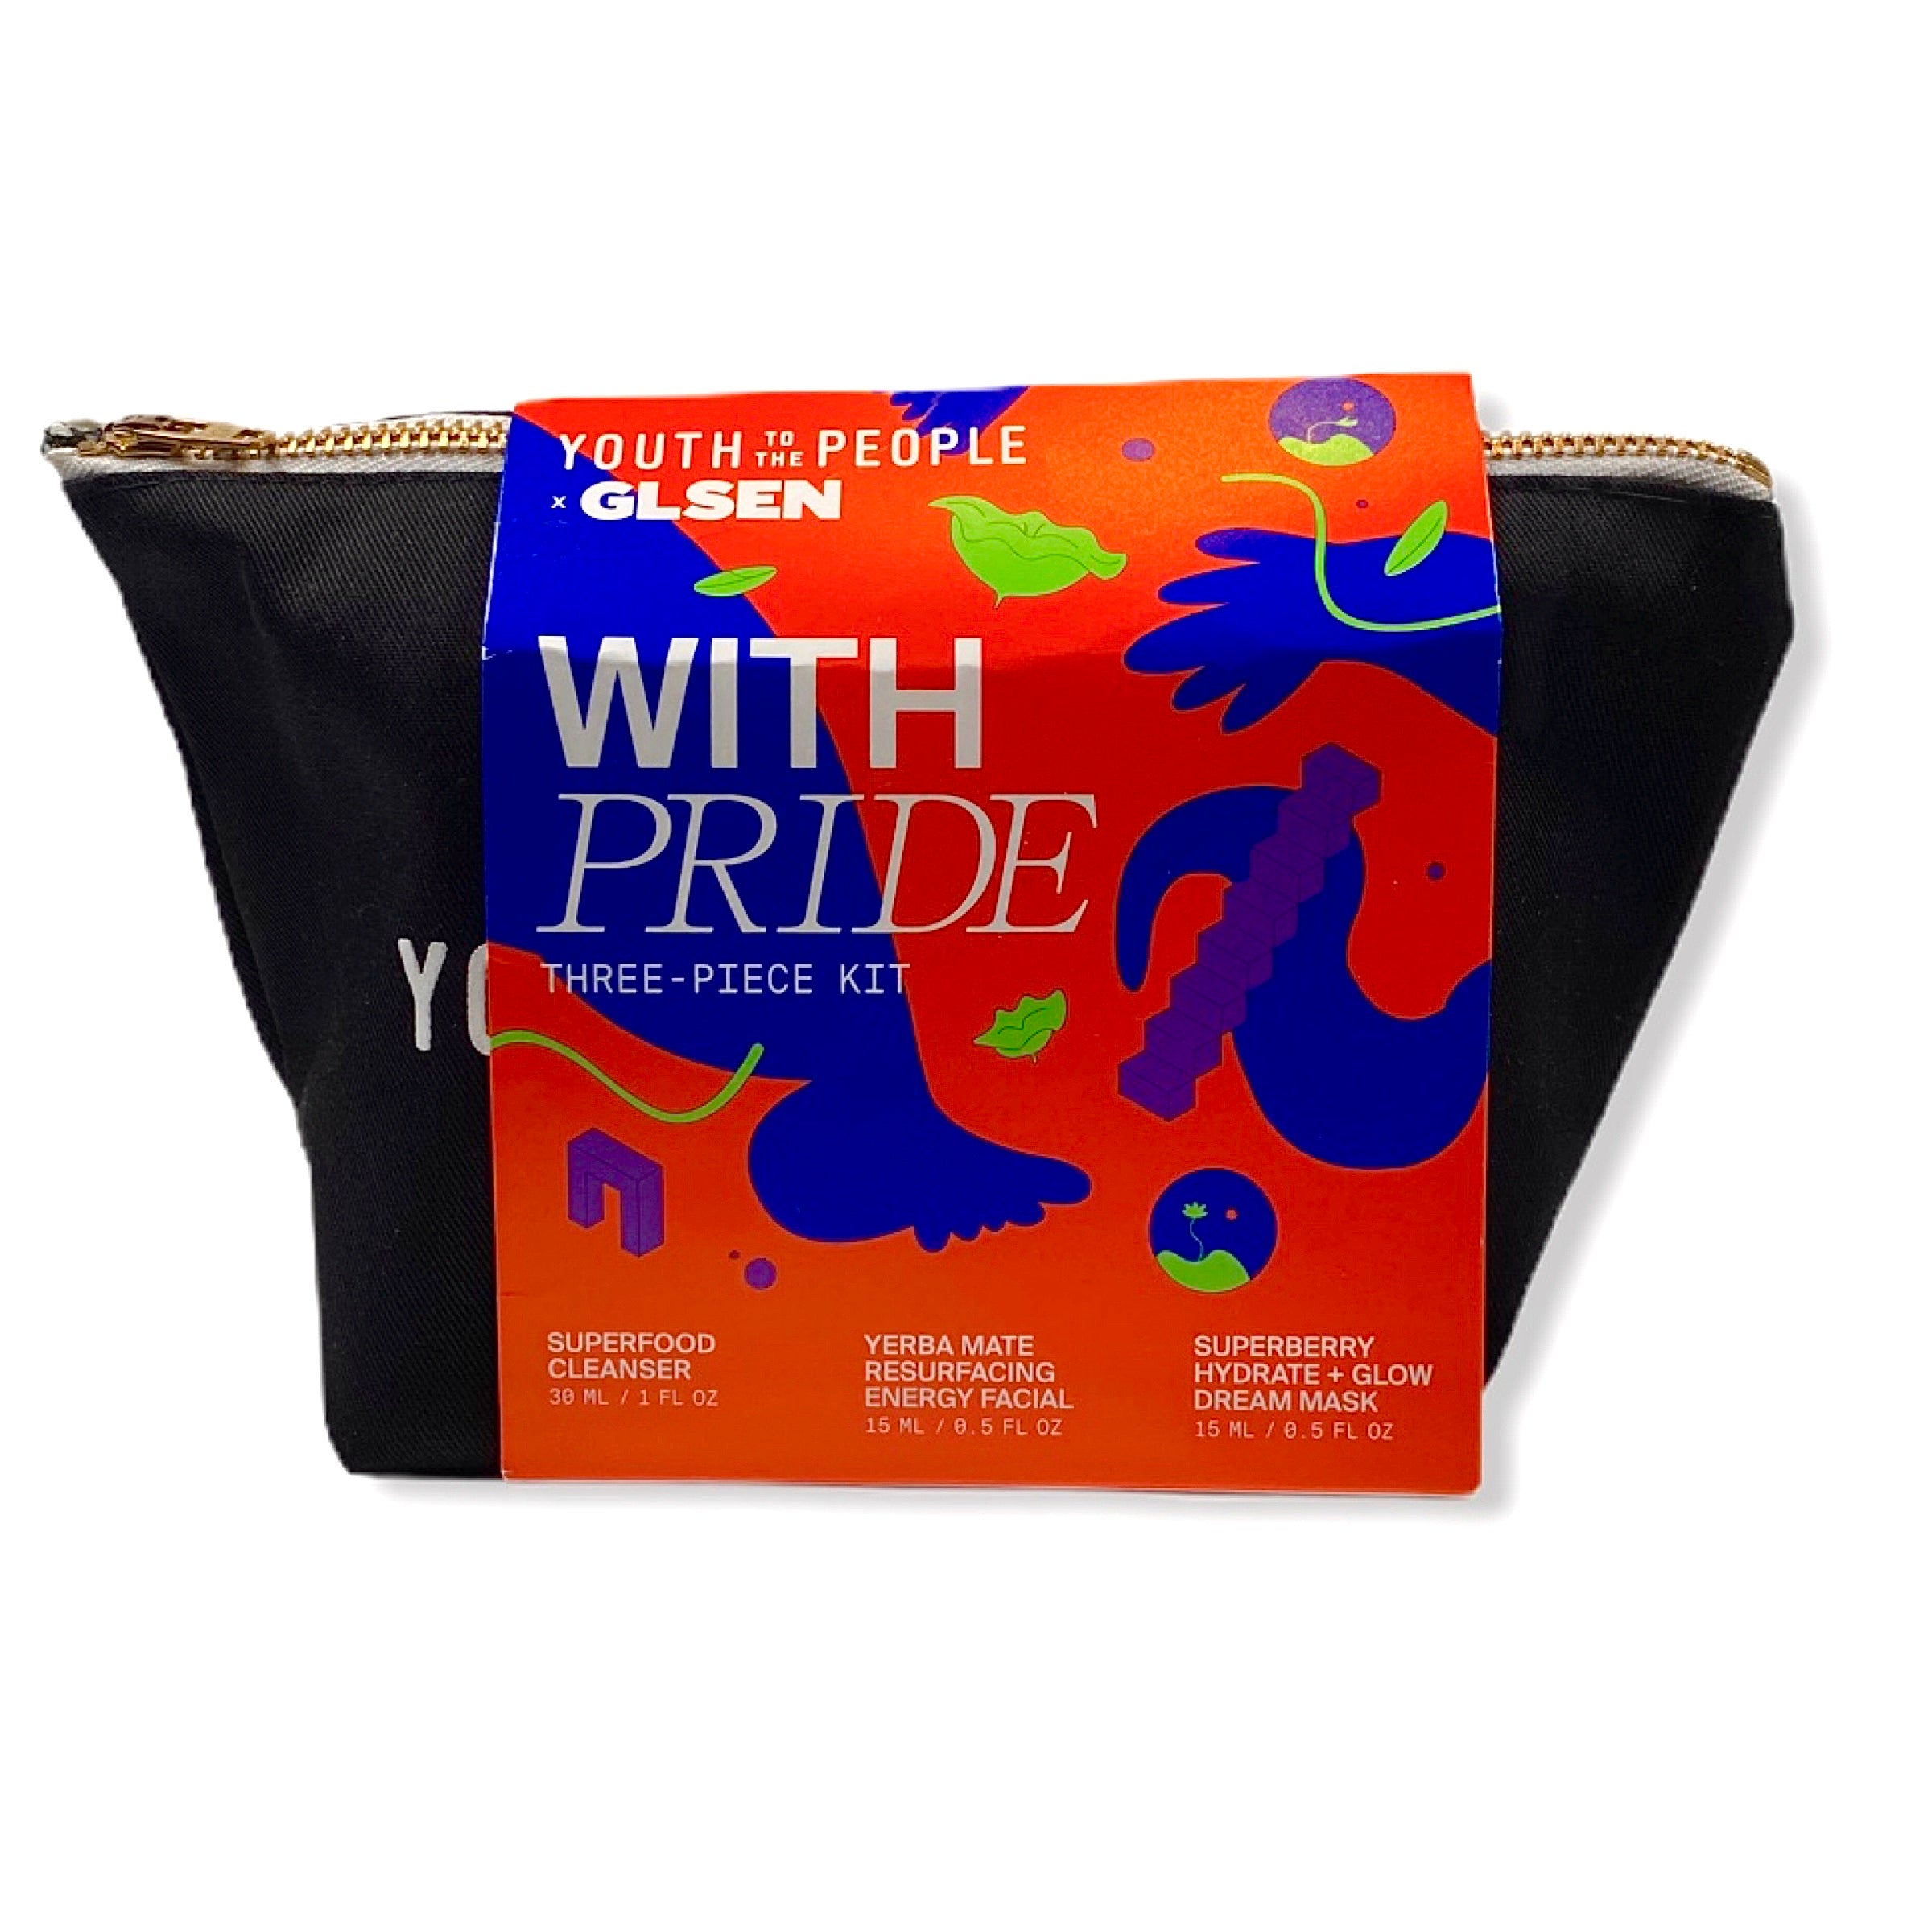 Youth To The People With Pride Minis Kit, Skin Care, London Loves Beauty